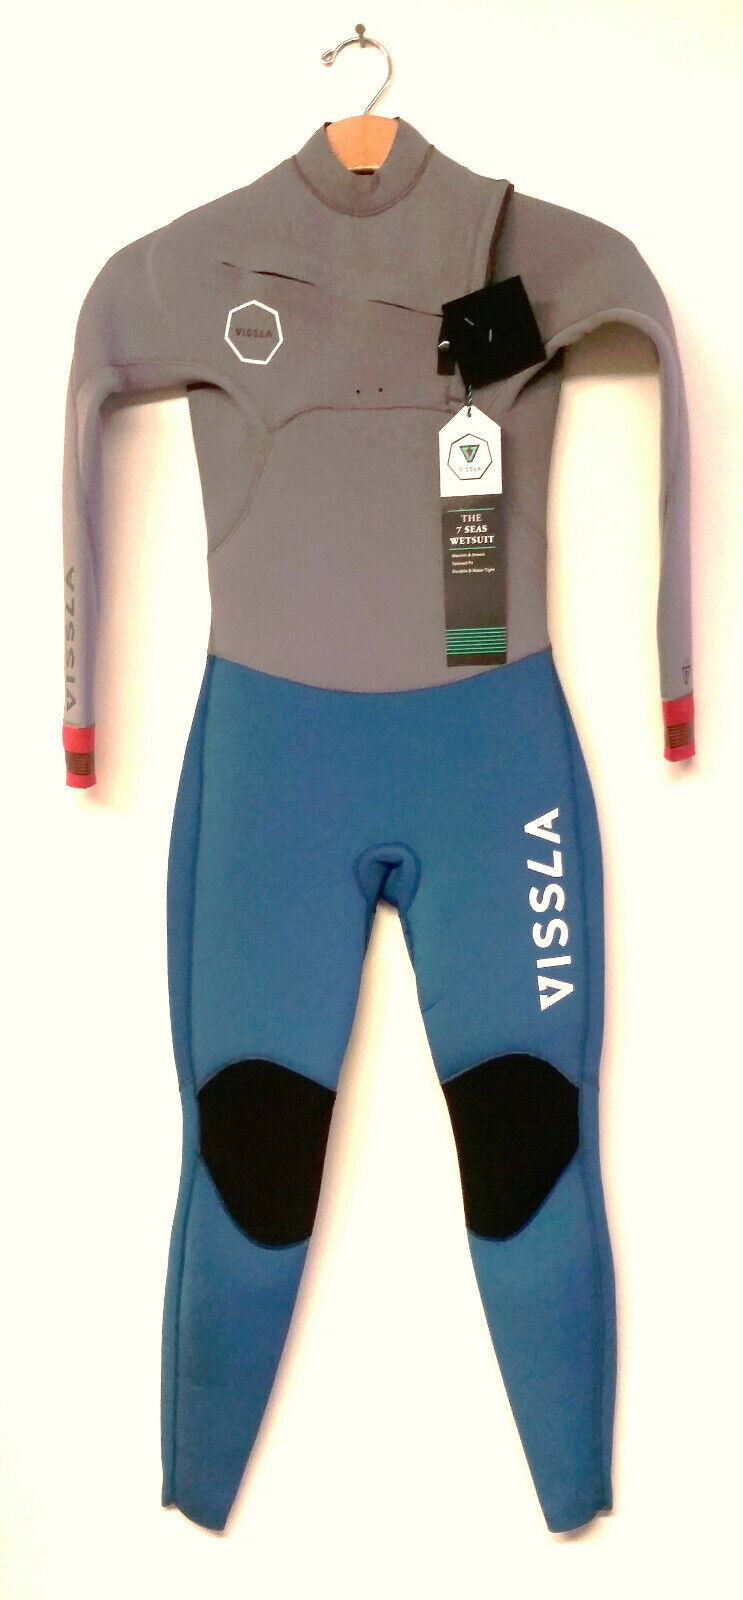 VISSLA Youth 3 2 SEVEN SEAS CZ Wetsuit -  MRN - Size 10 - NWT  more affordable